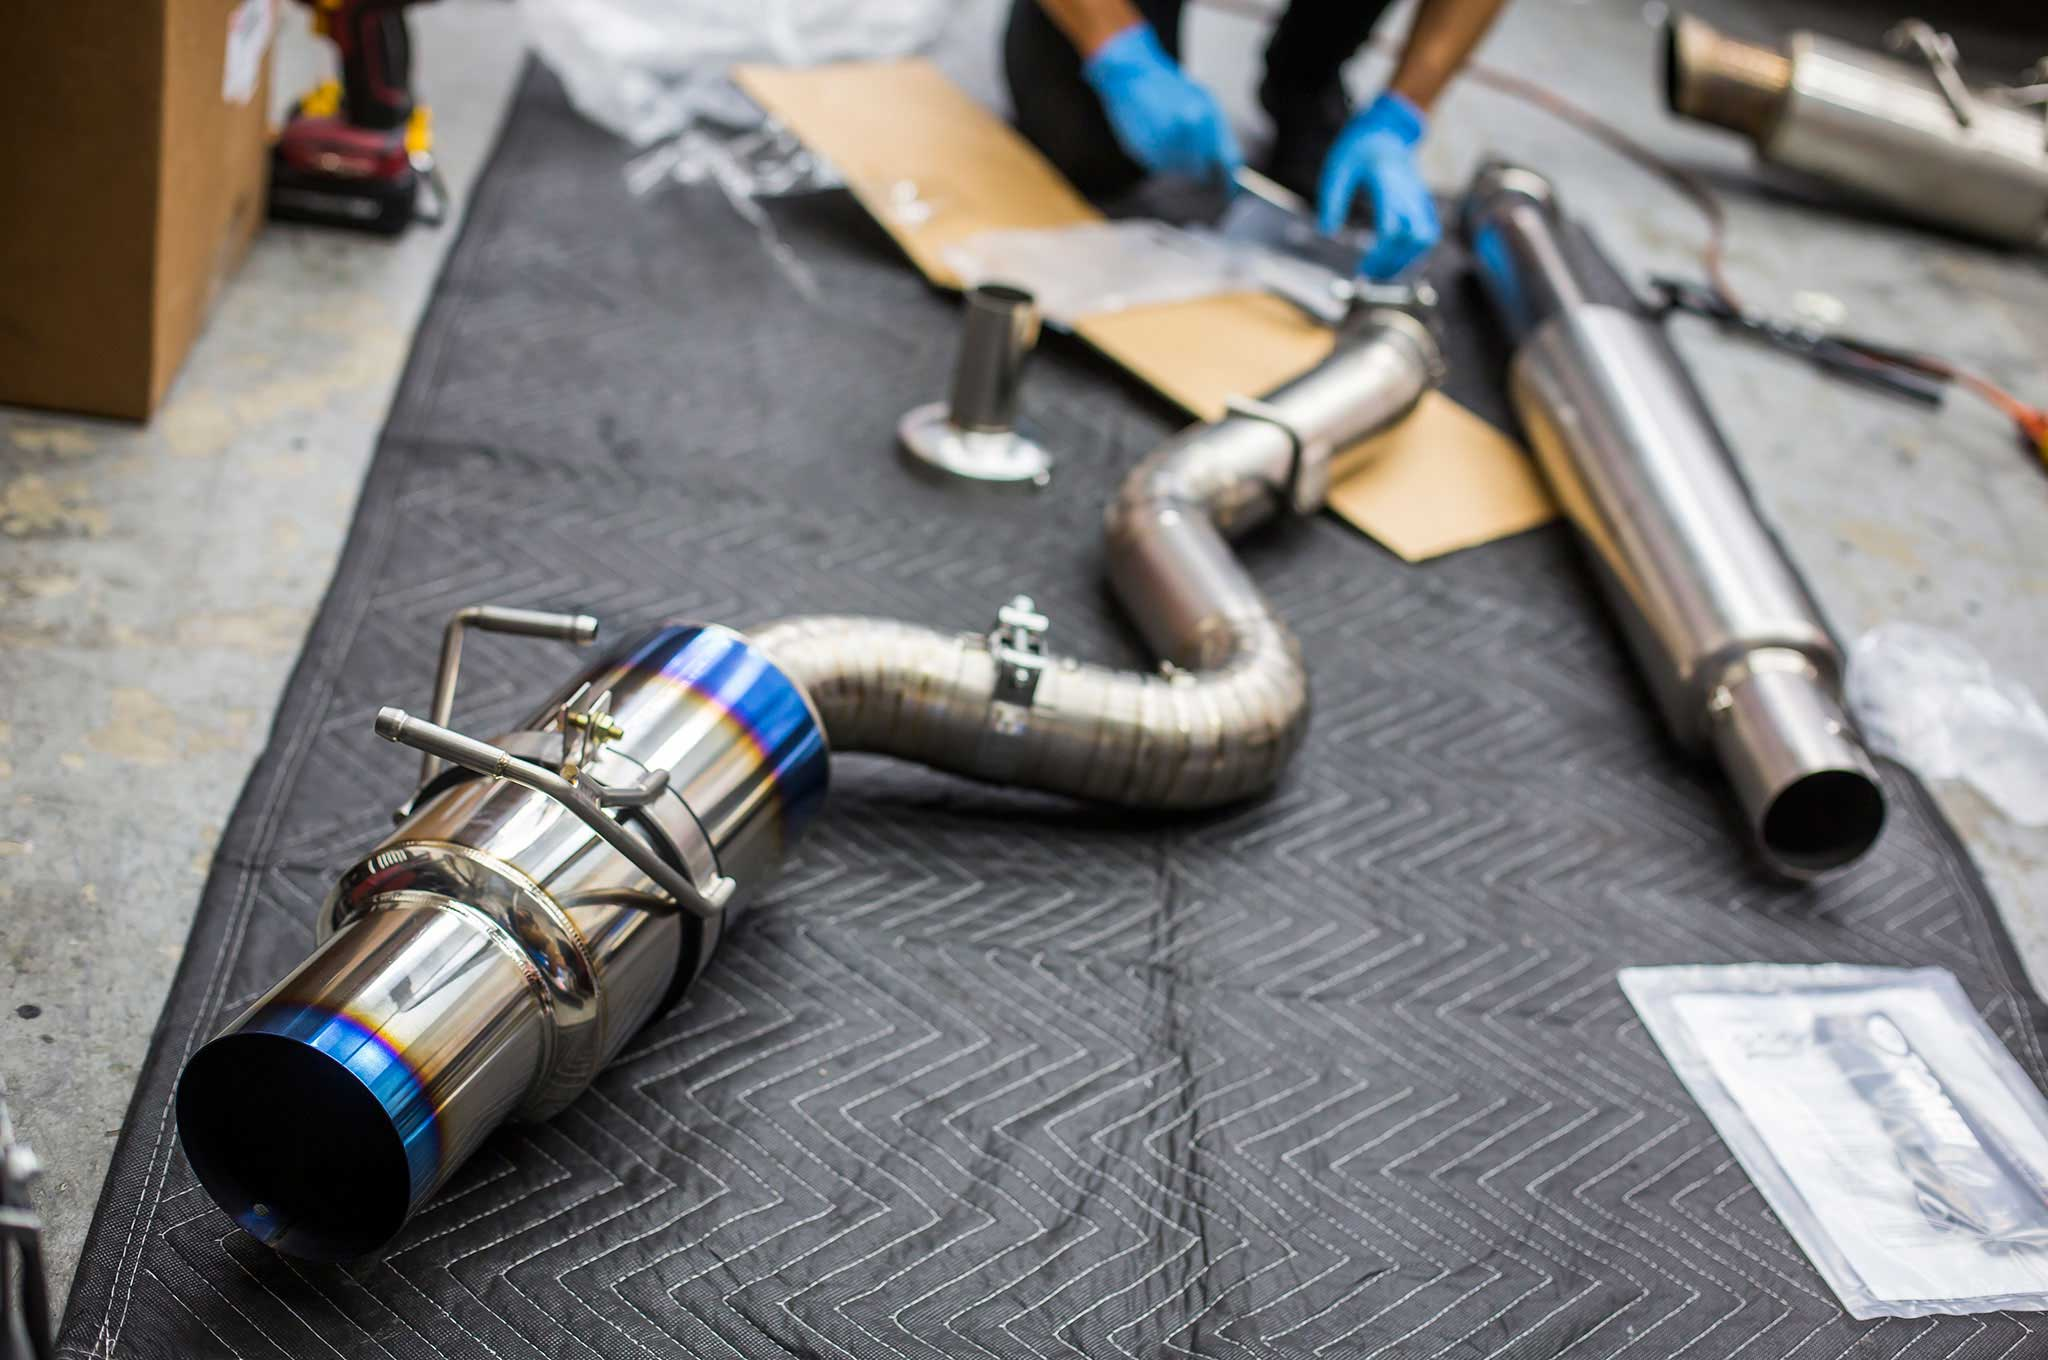 5 Reasons To Get A Tomei Expreme Ti Exhaust